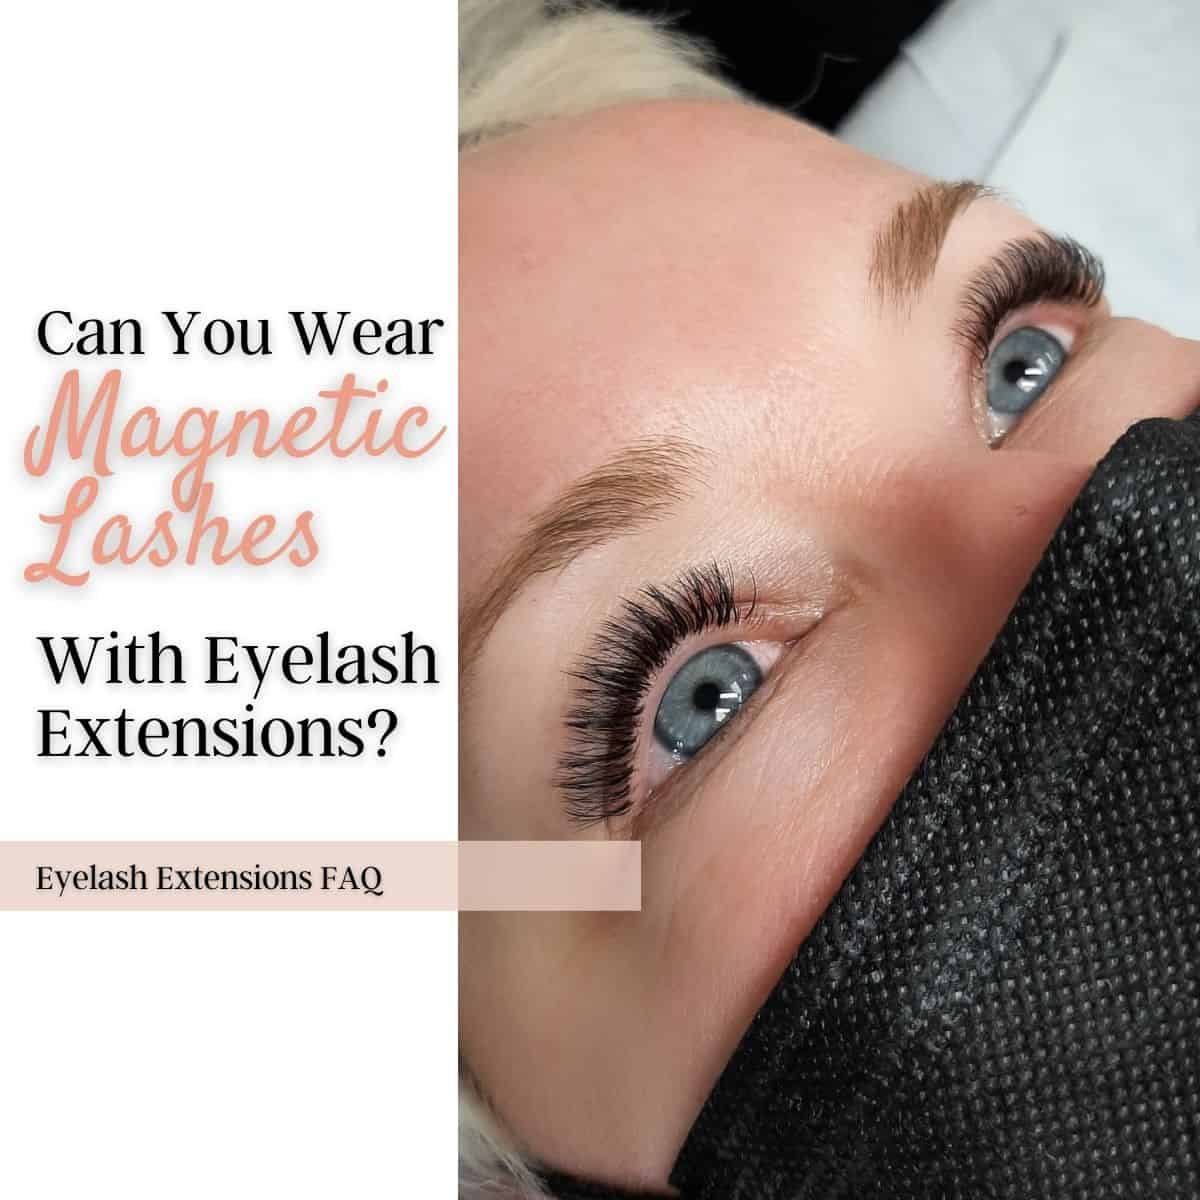 Woman wearing eyelash extensions with eyes opened